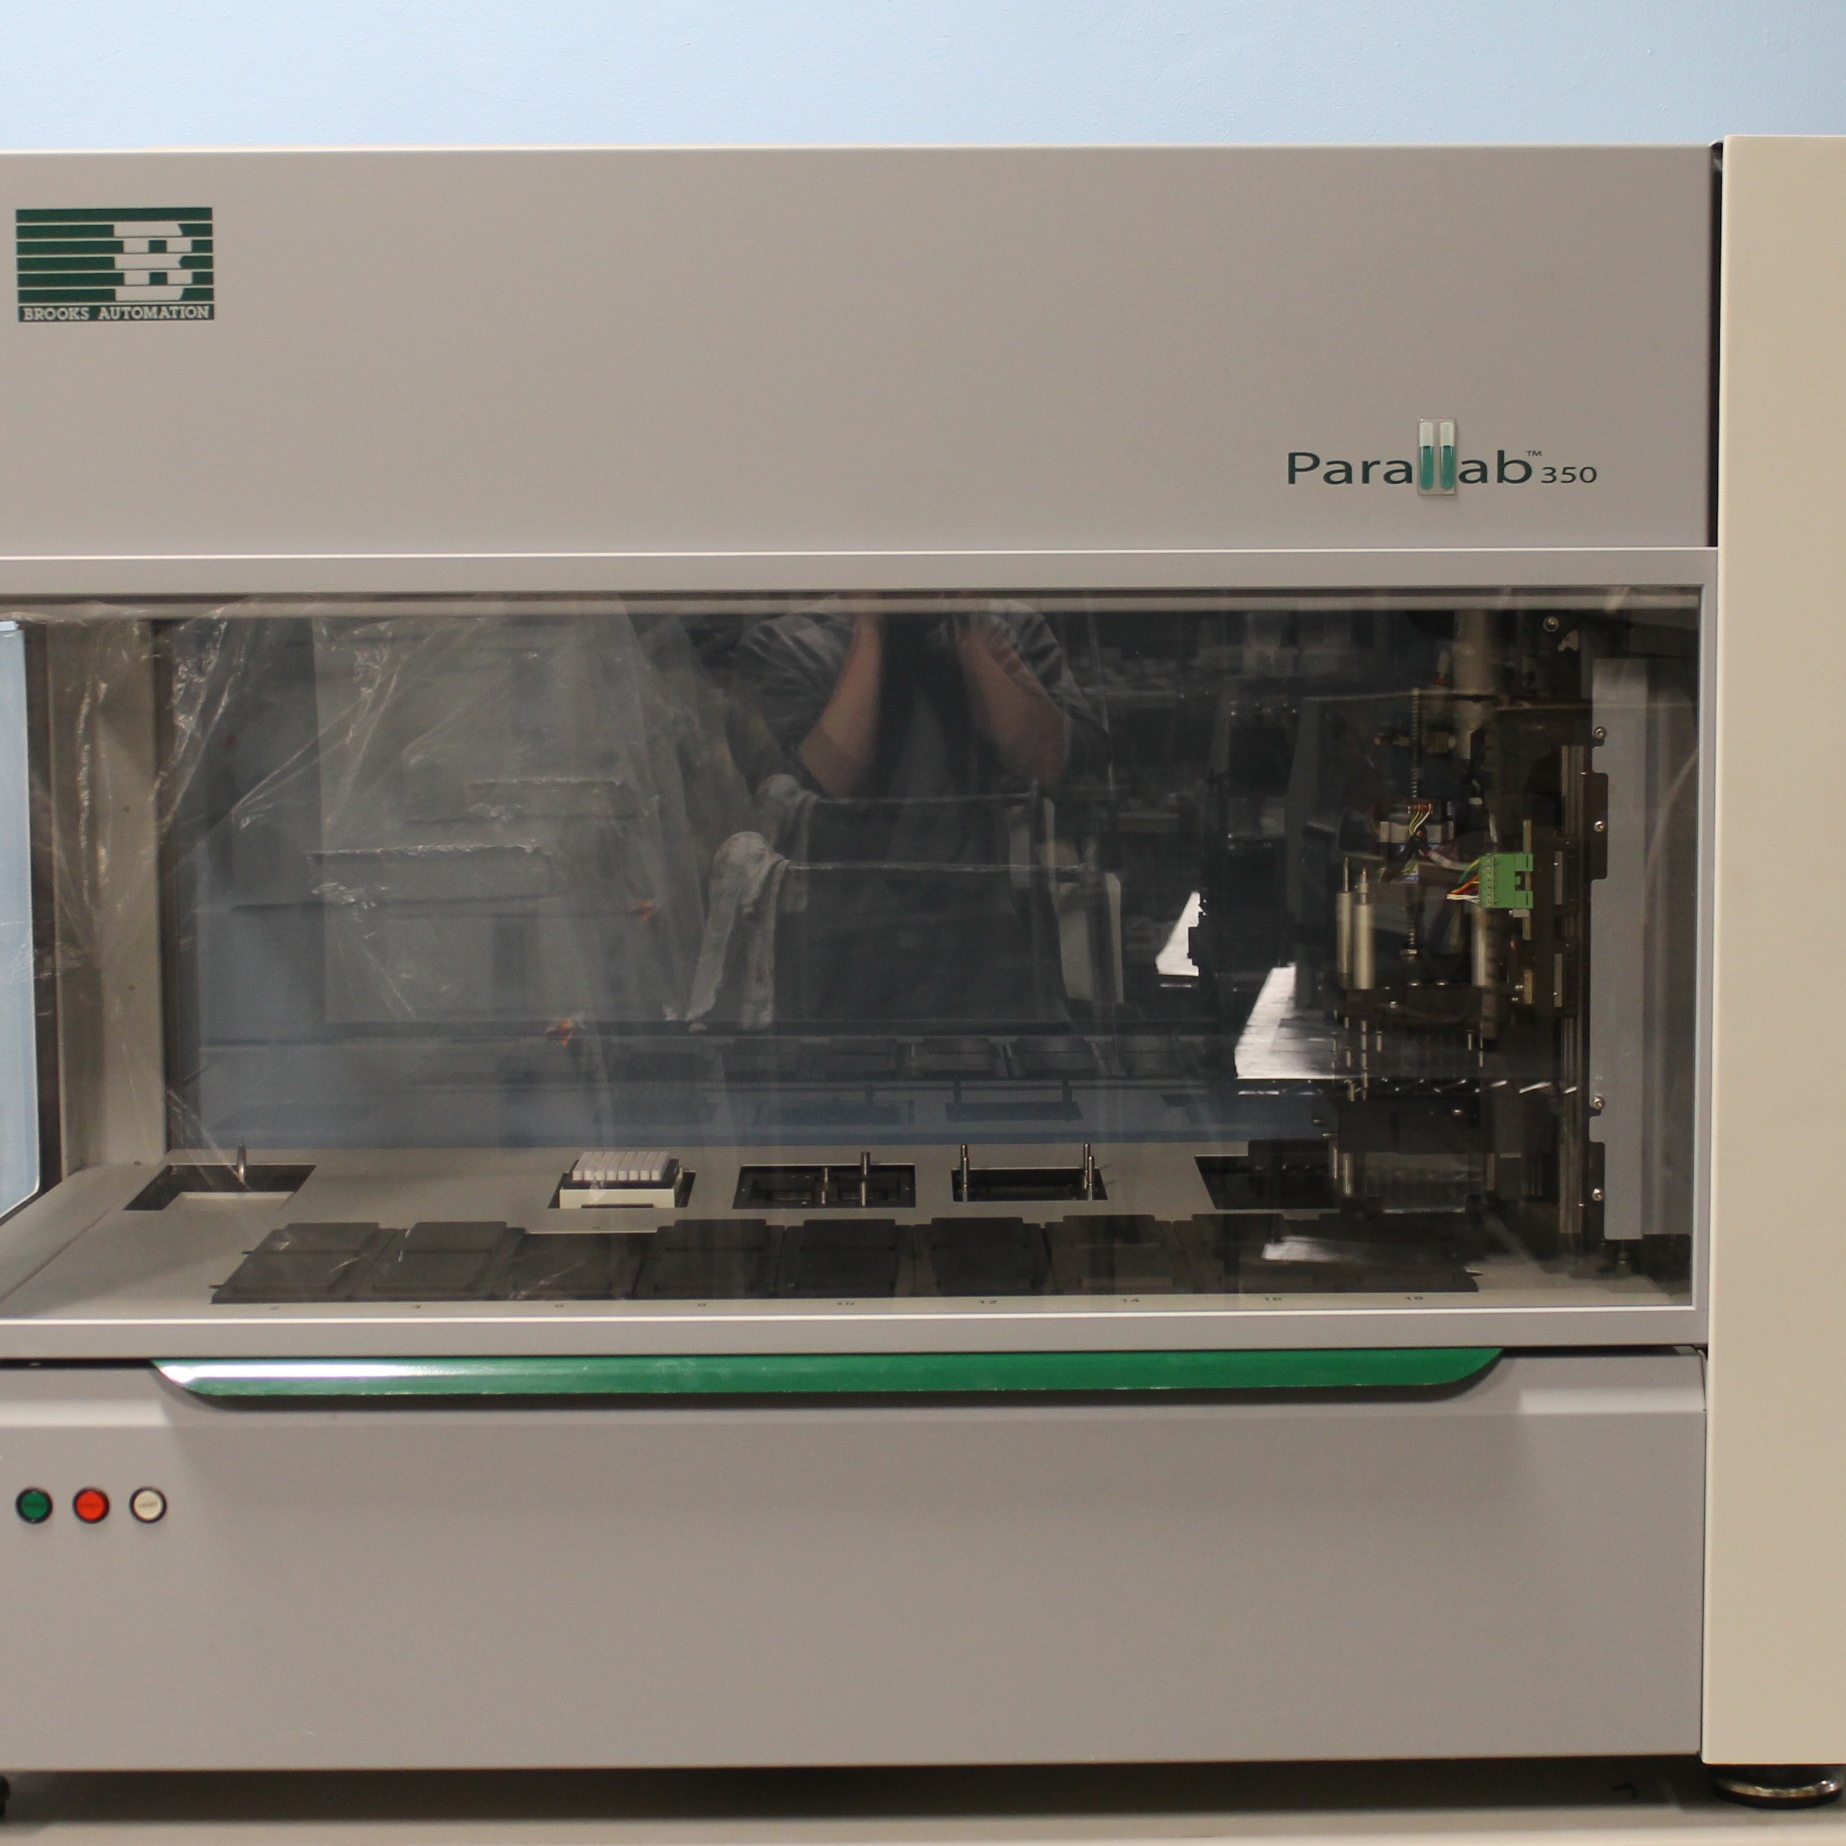 Parallab 350 Nanoliter Workstation Name